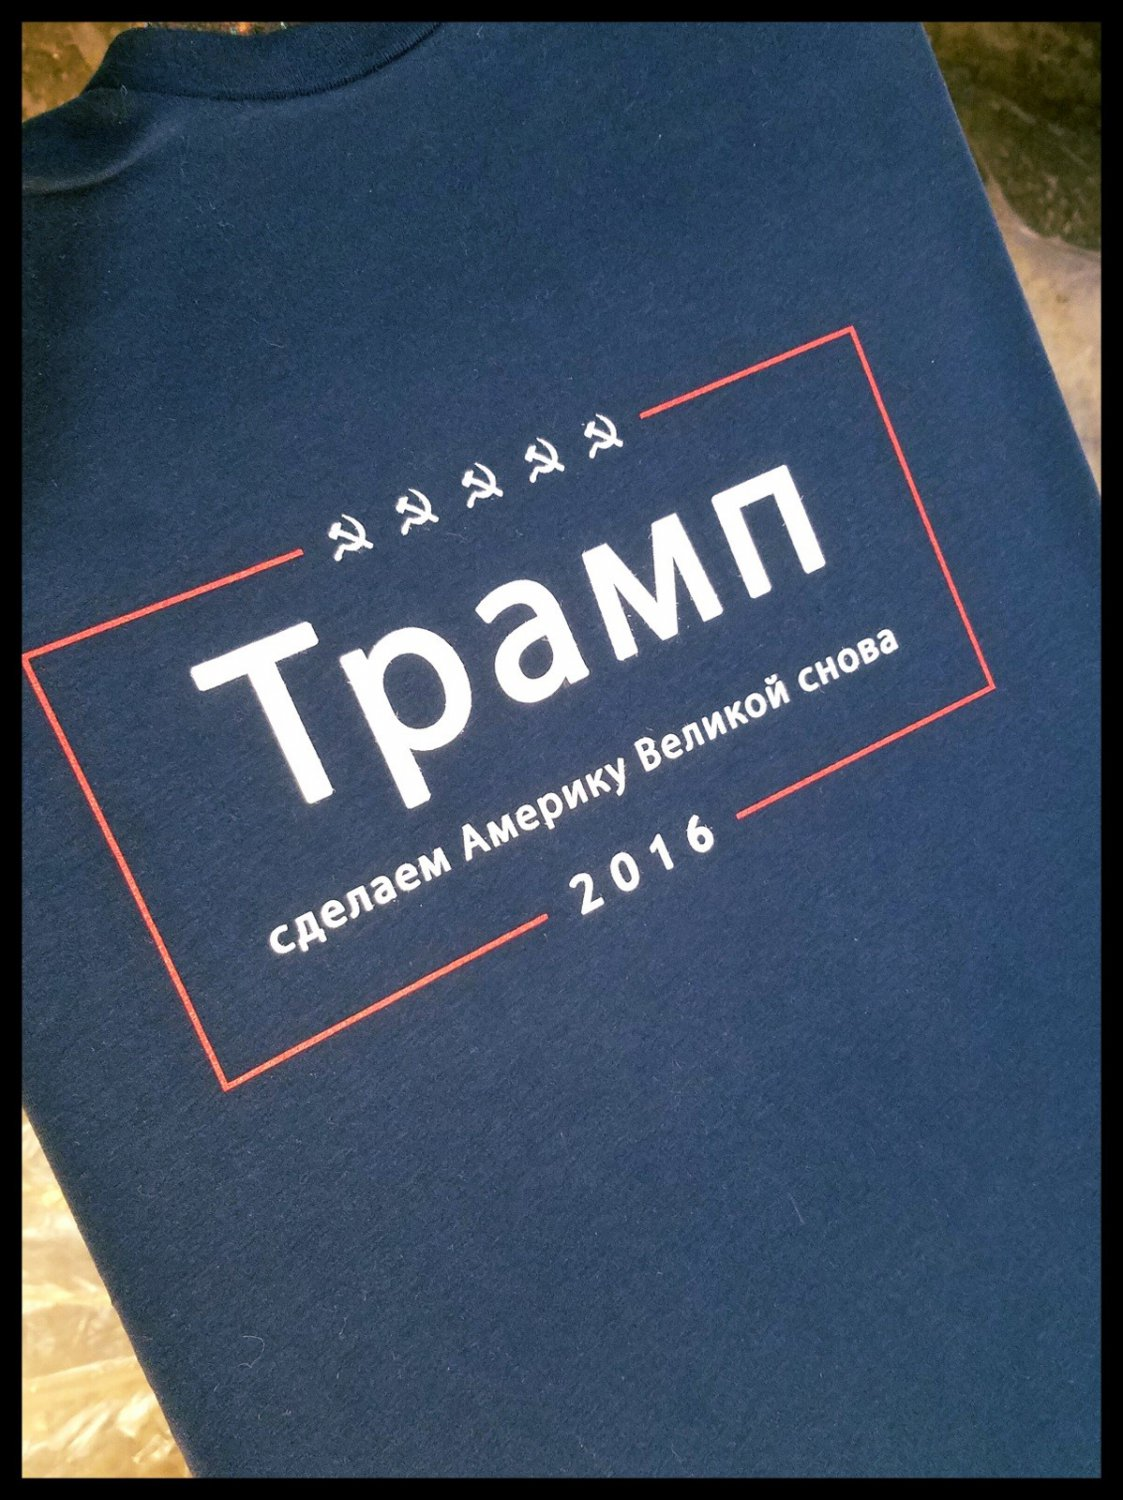 TRUMP CAMPAIGN SHIRT Completely in Russian - NAVY BLUE Premium Sueded T Shirt SIZE M